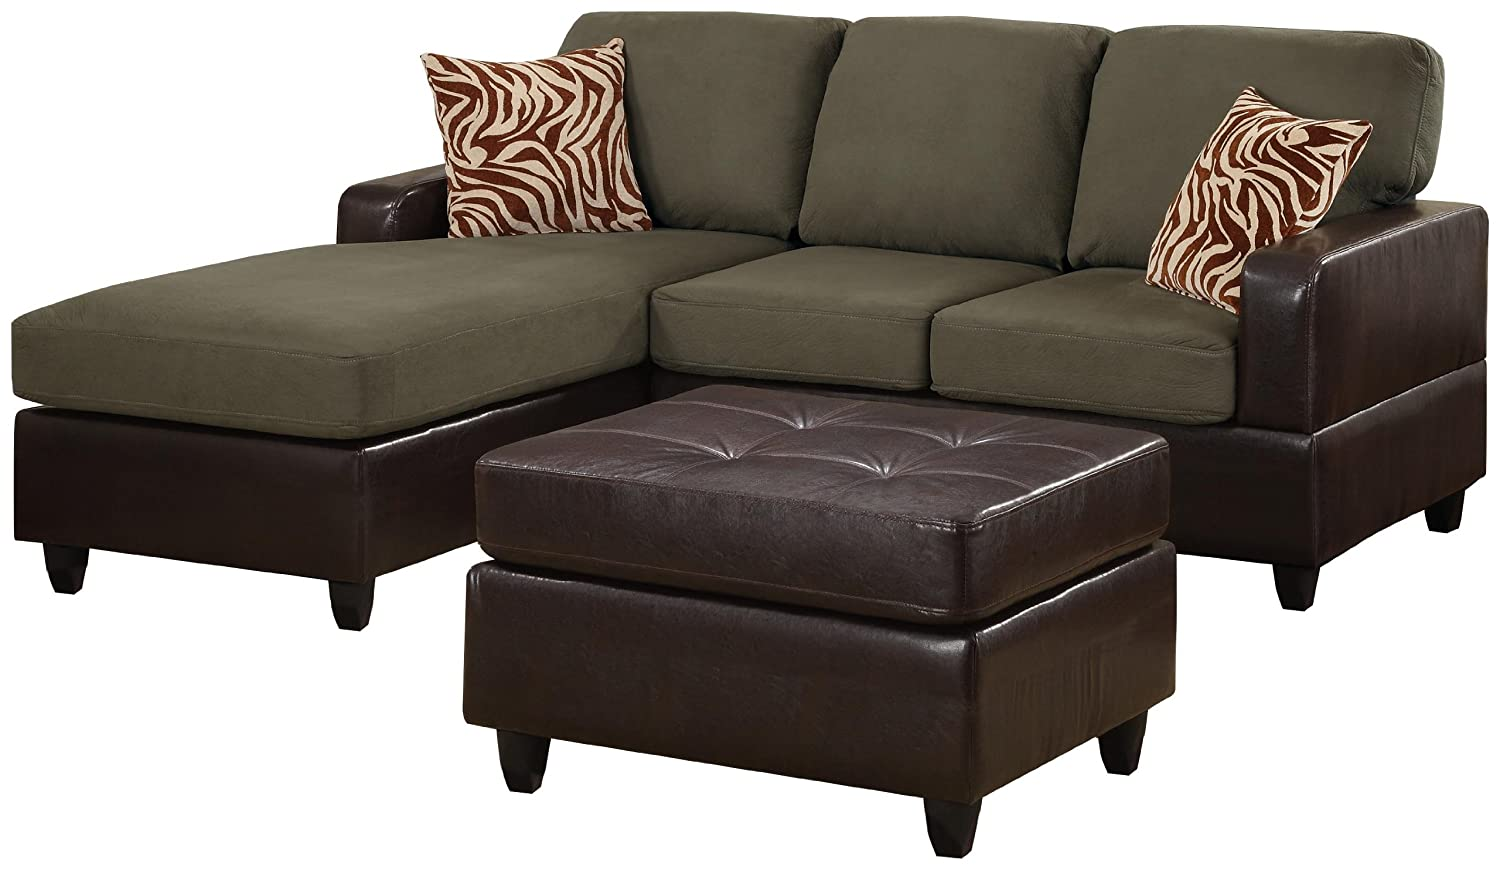 2 Sectional Sofa Brands Under $600 Dollars With Positive Reviews